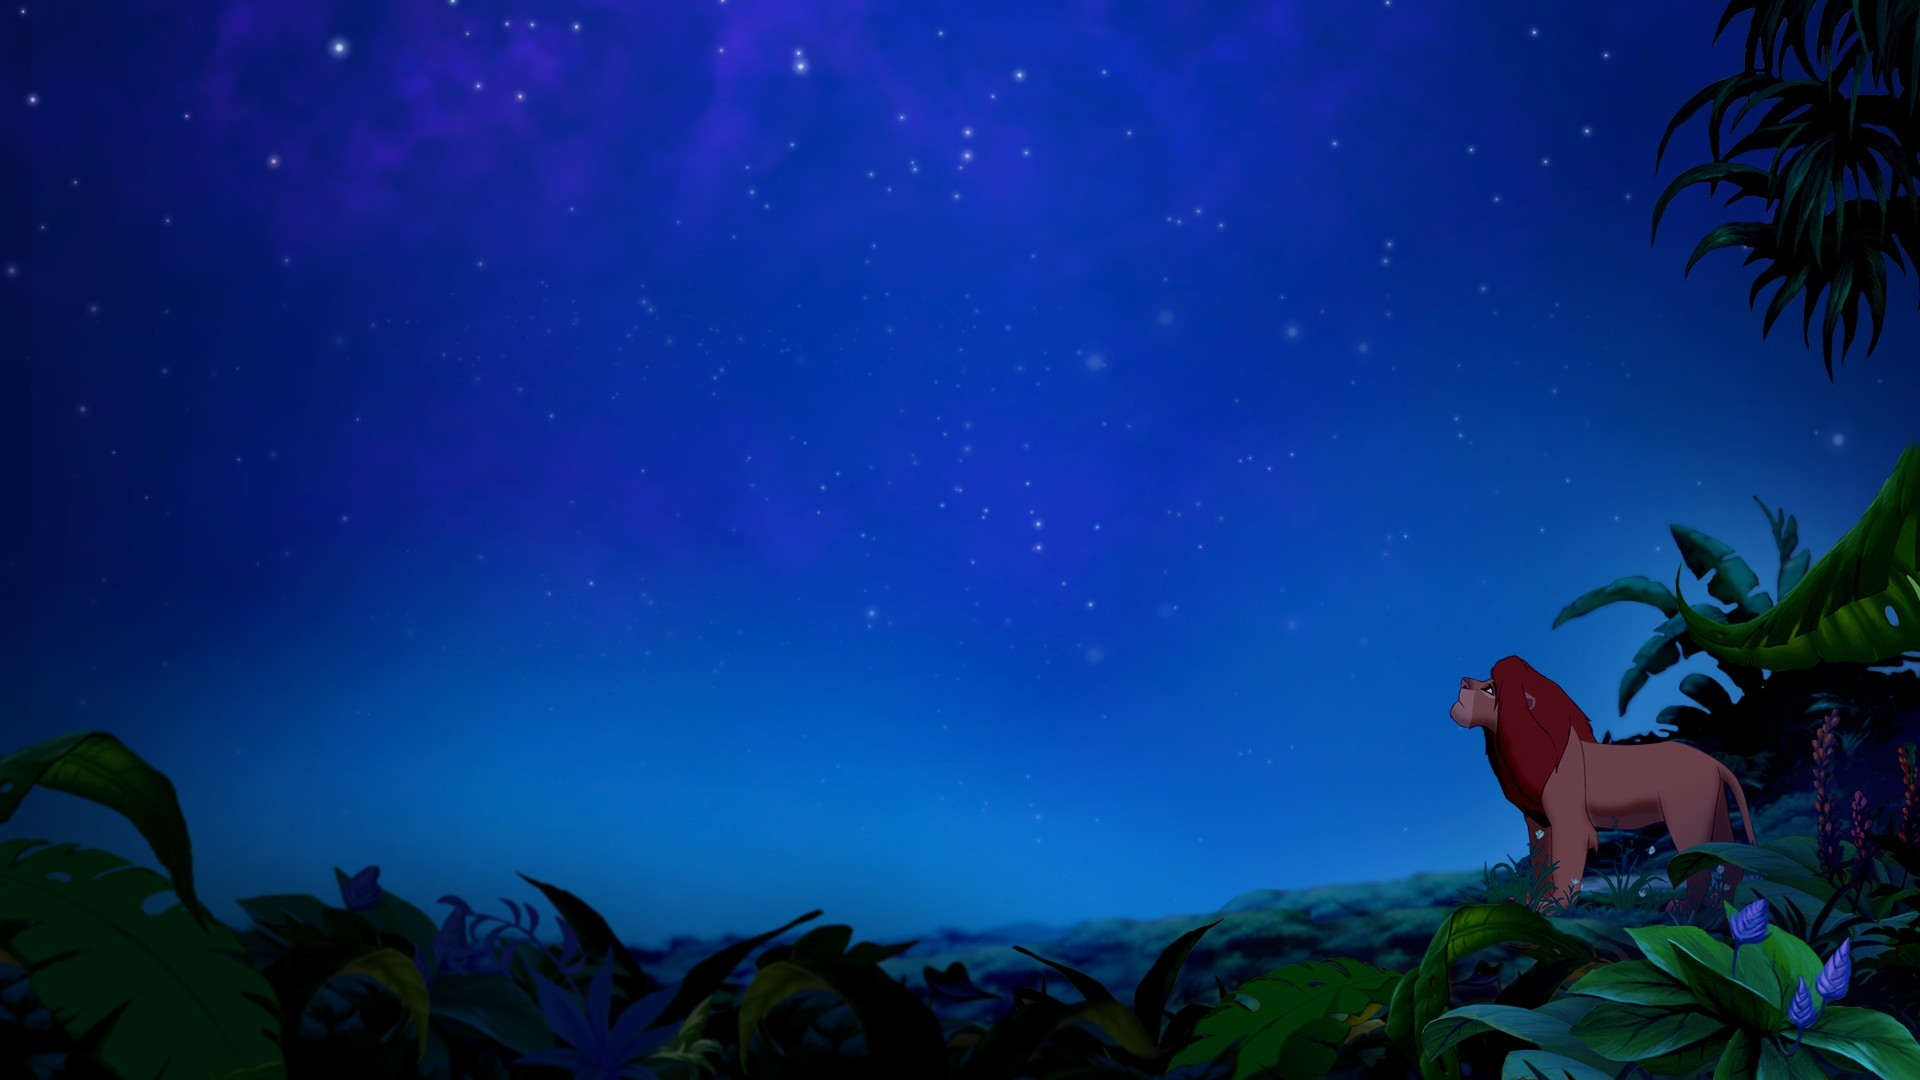 Animated movies the lion king jungle night sky wallpaper 1920x1080